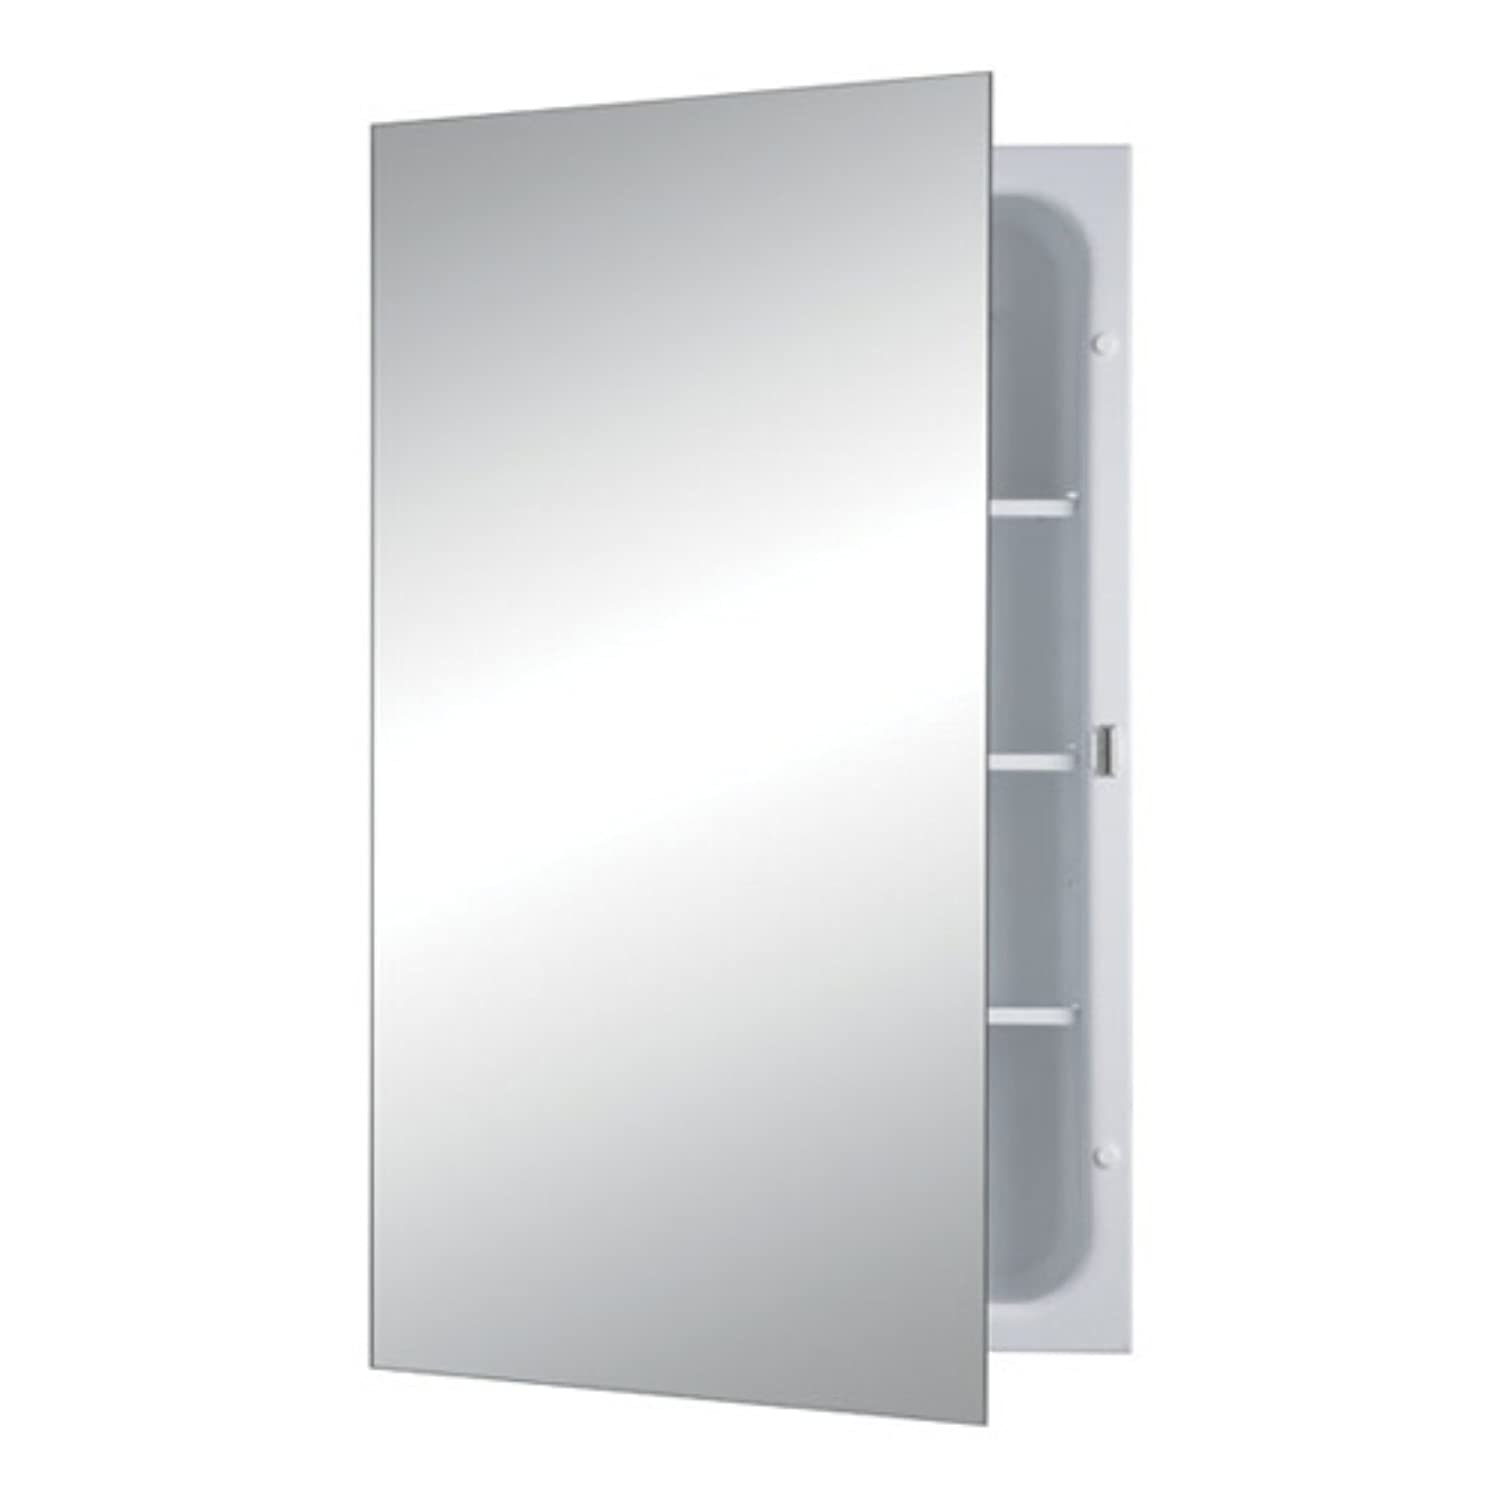 Amazon.com Broan-NuTone 1430 Focus Single-Door Recessed Medicine Cabinet White Baked Enamel Home Improvement  sc 1 st  Amazon.com & Amazon.com: Broan-NuTone 1430 Focus Single-Door Recessed Medicine ...